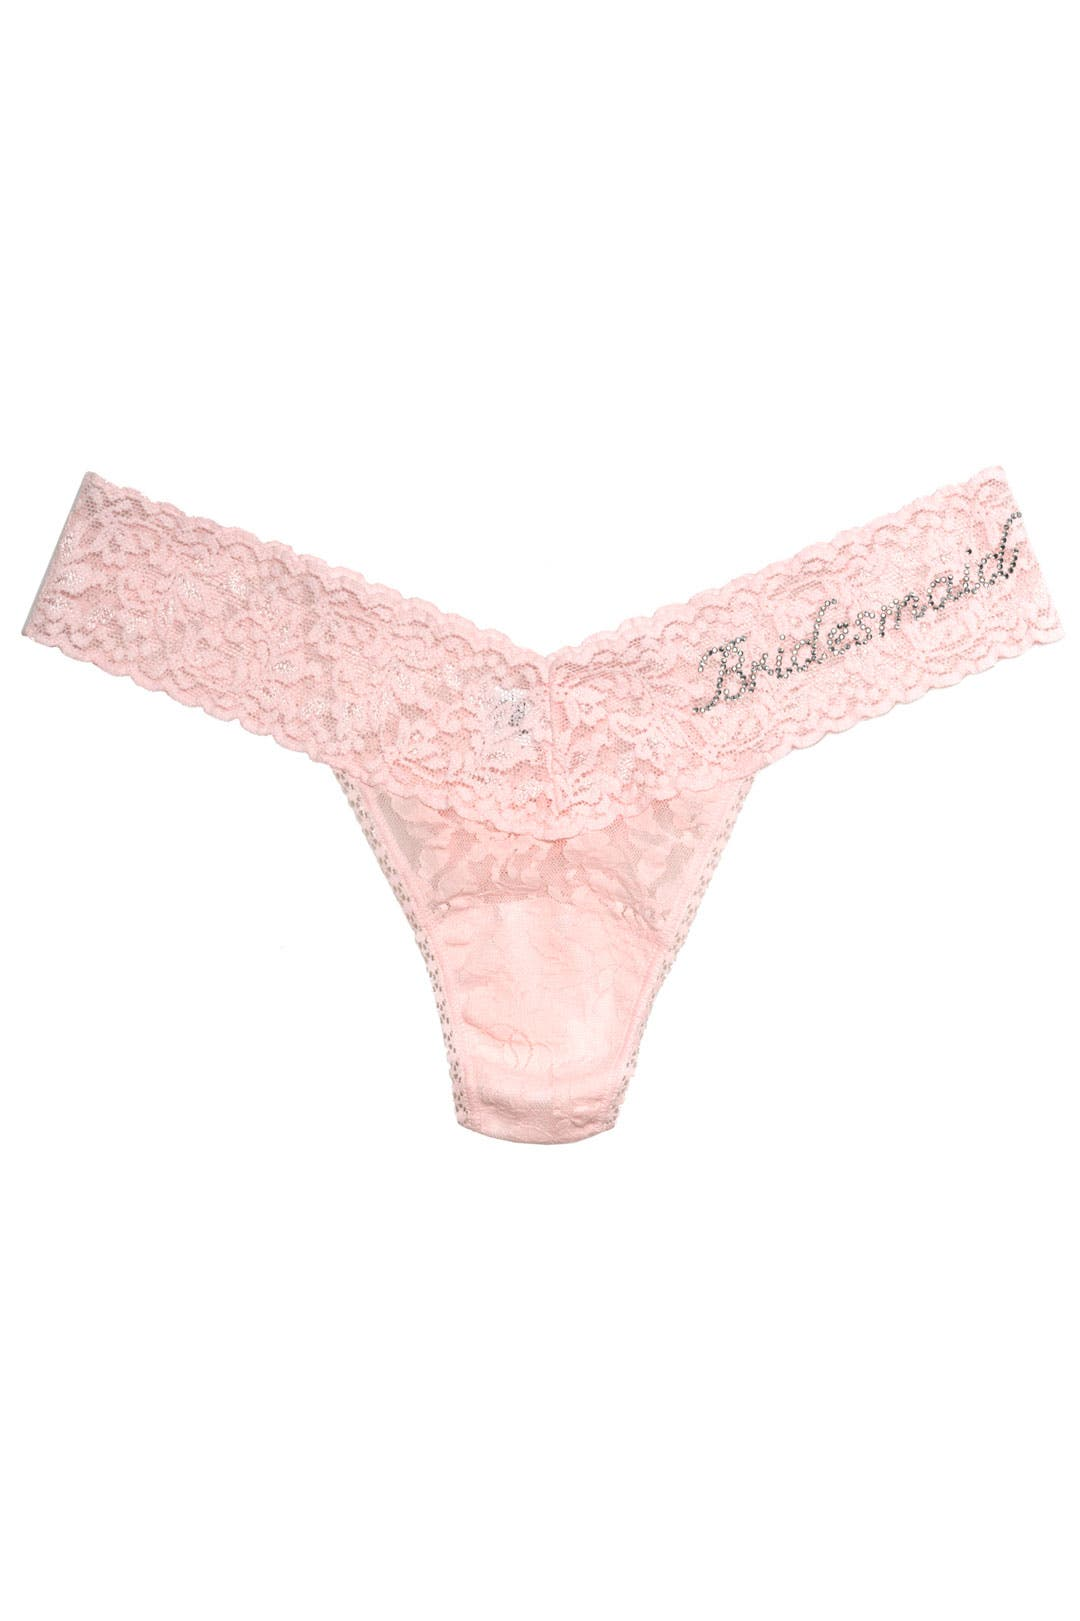 Bridesmaid Low Rise Thong by Hanky Panky